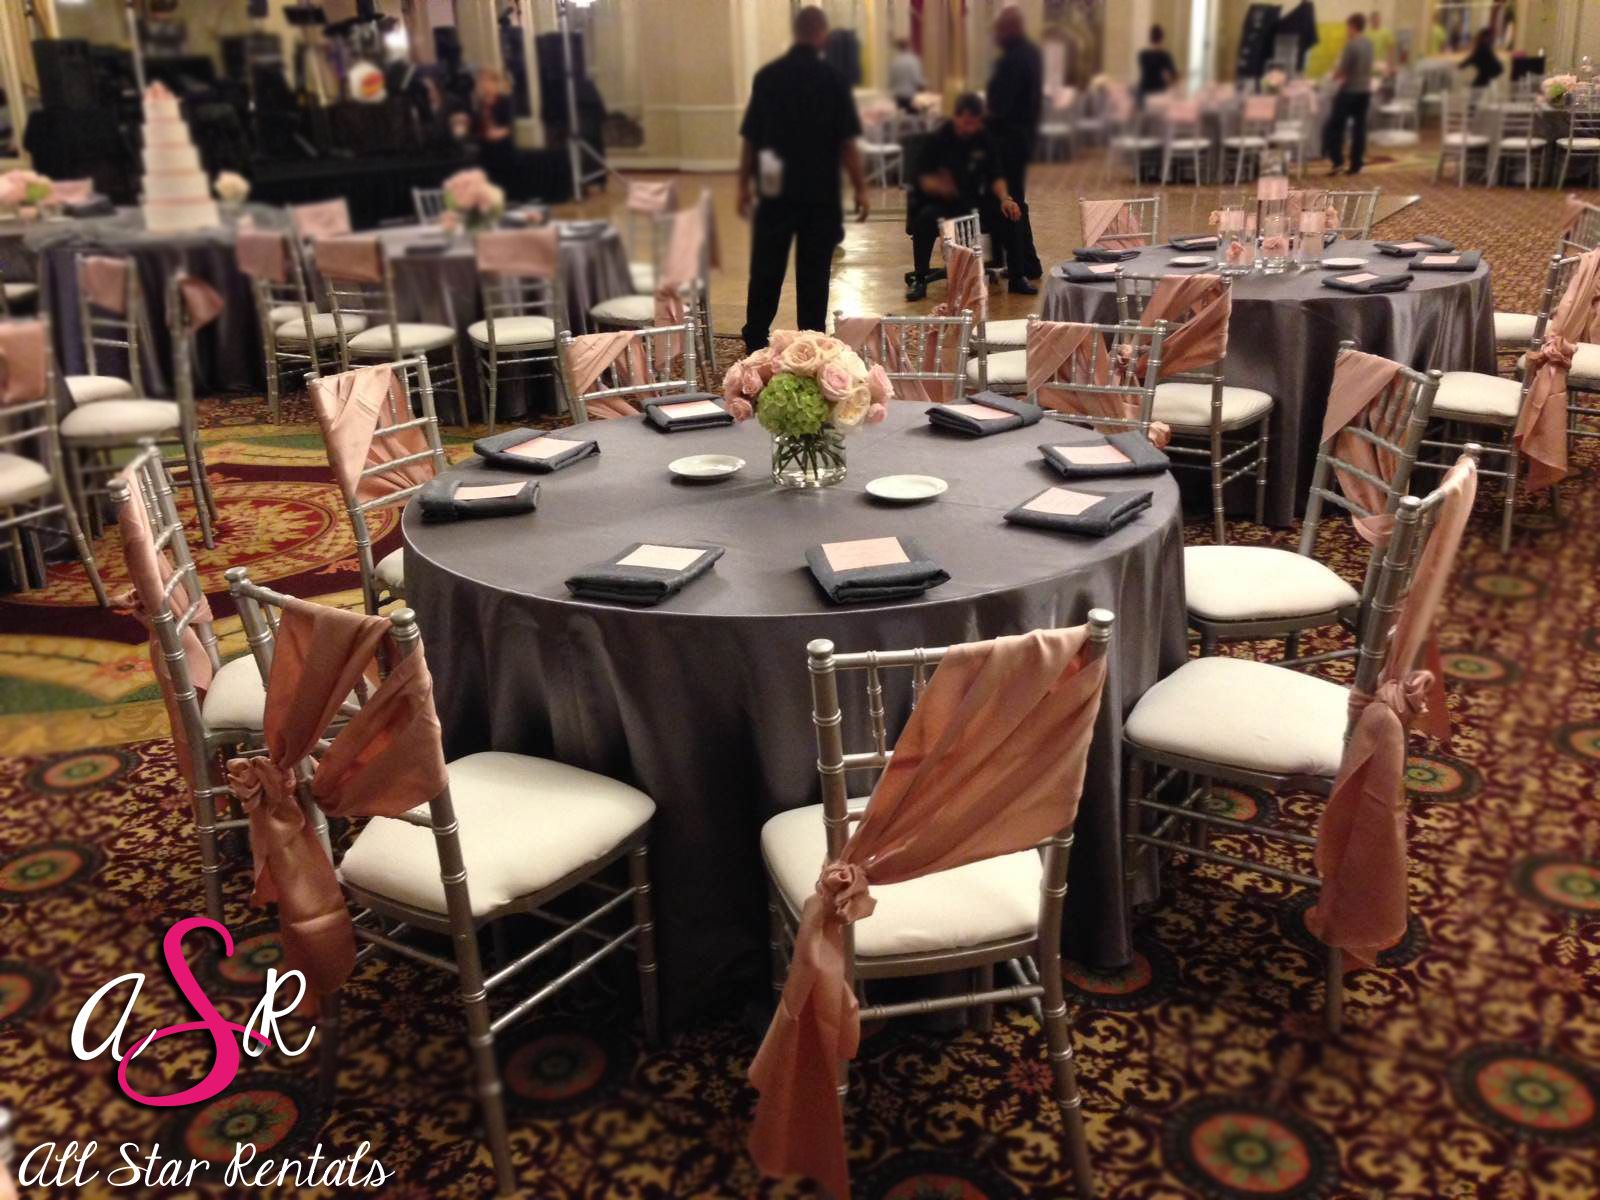 I love what they did with our silver chiavari chairs